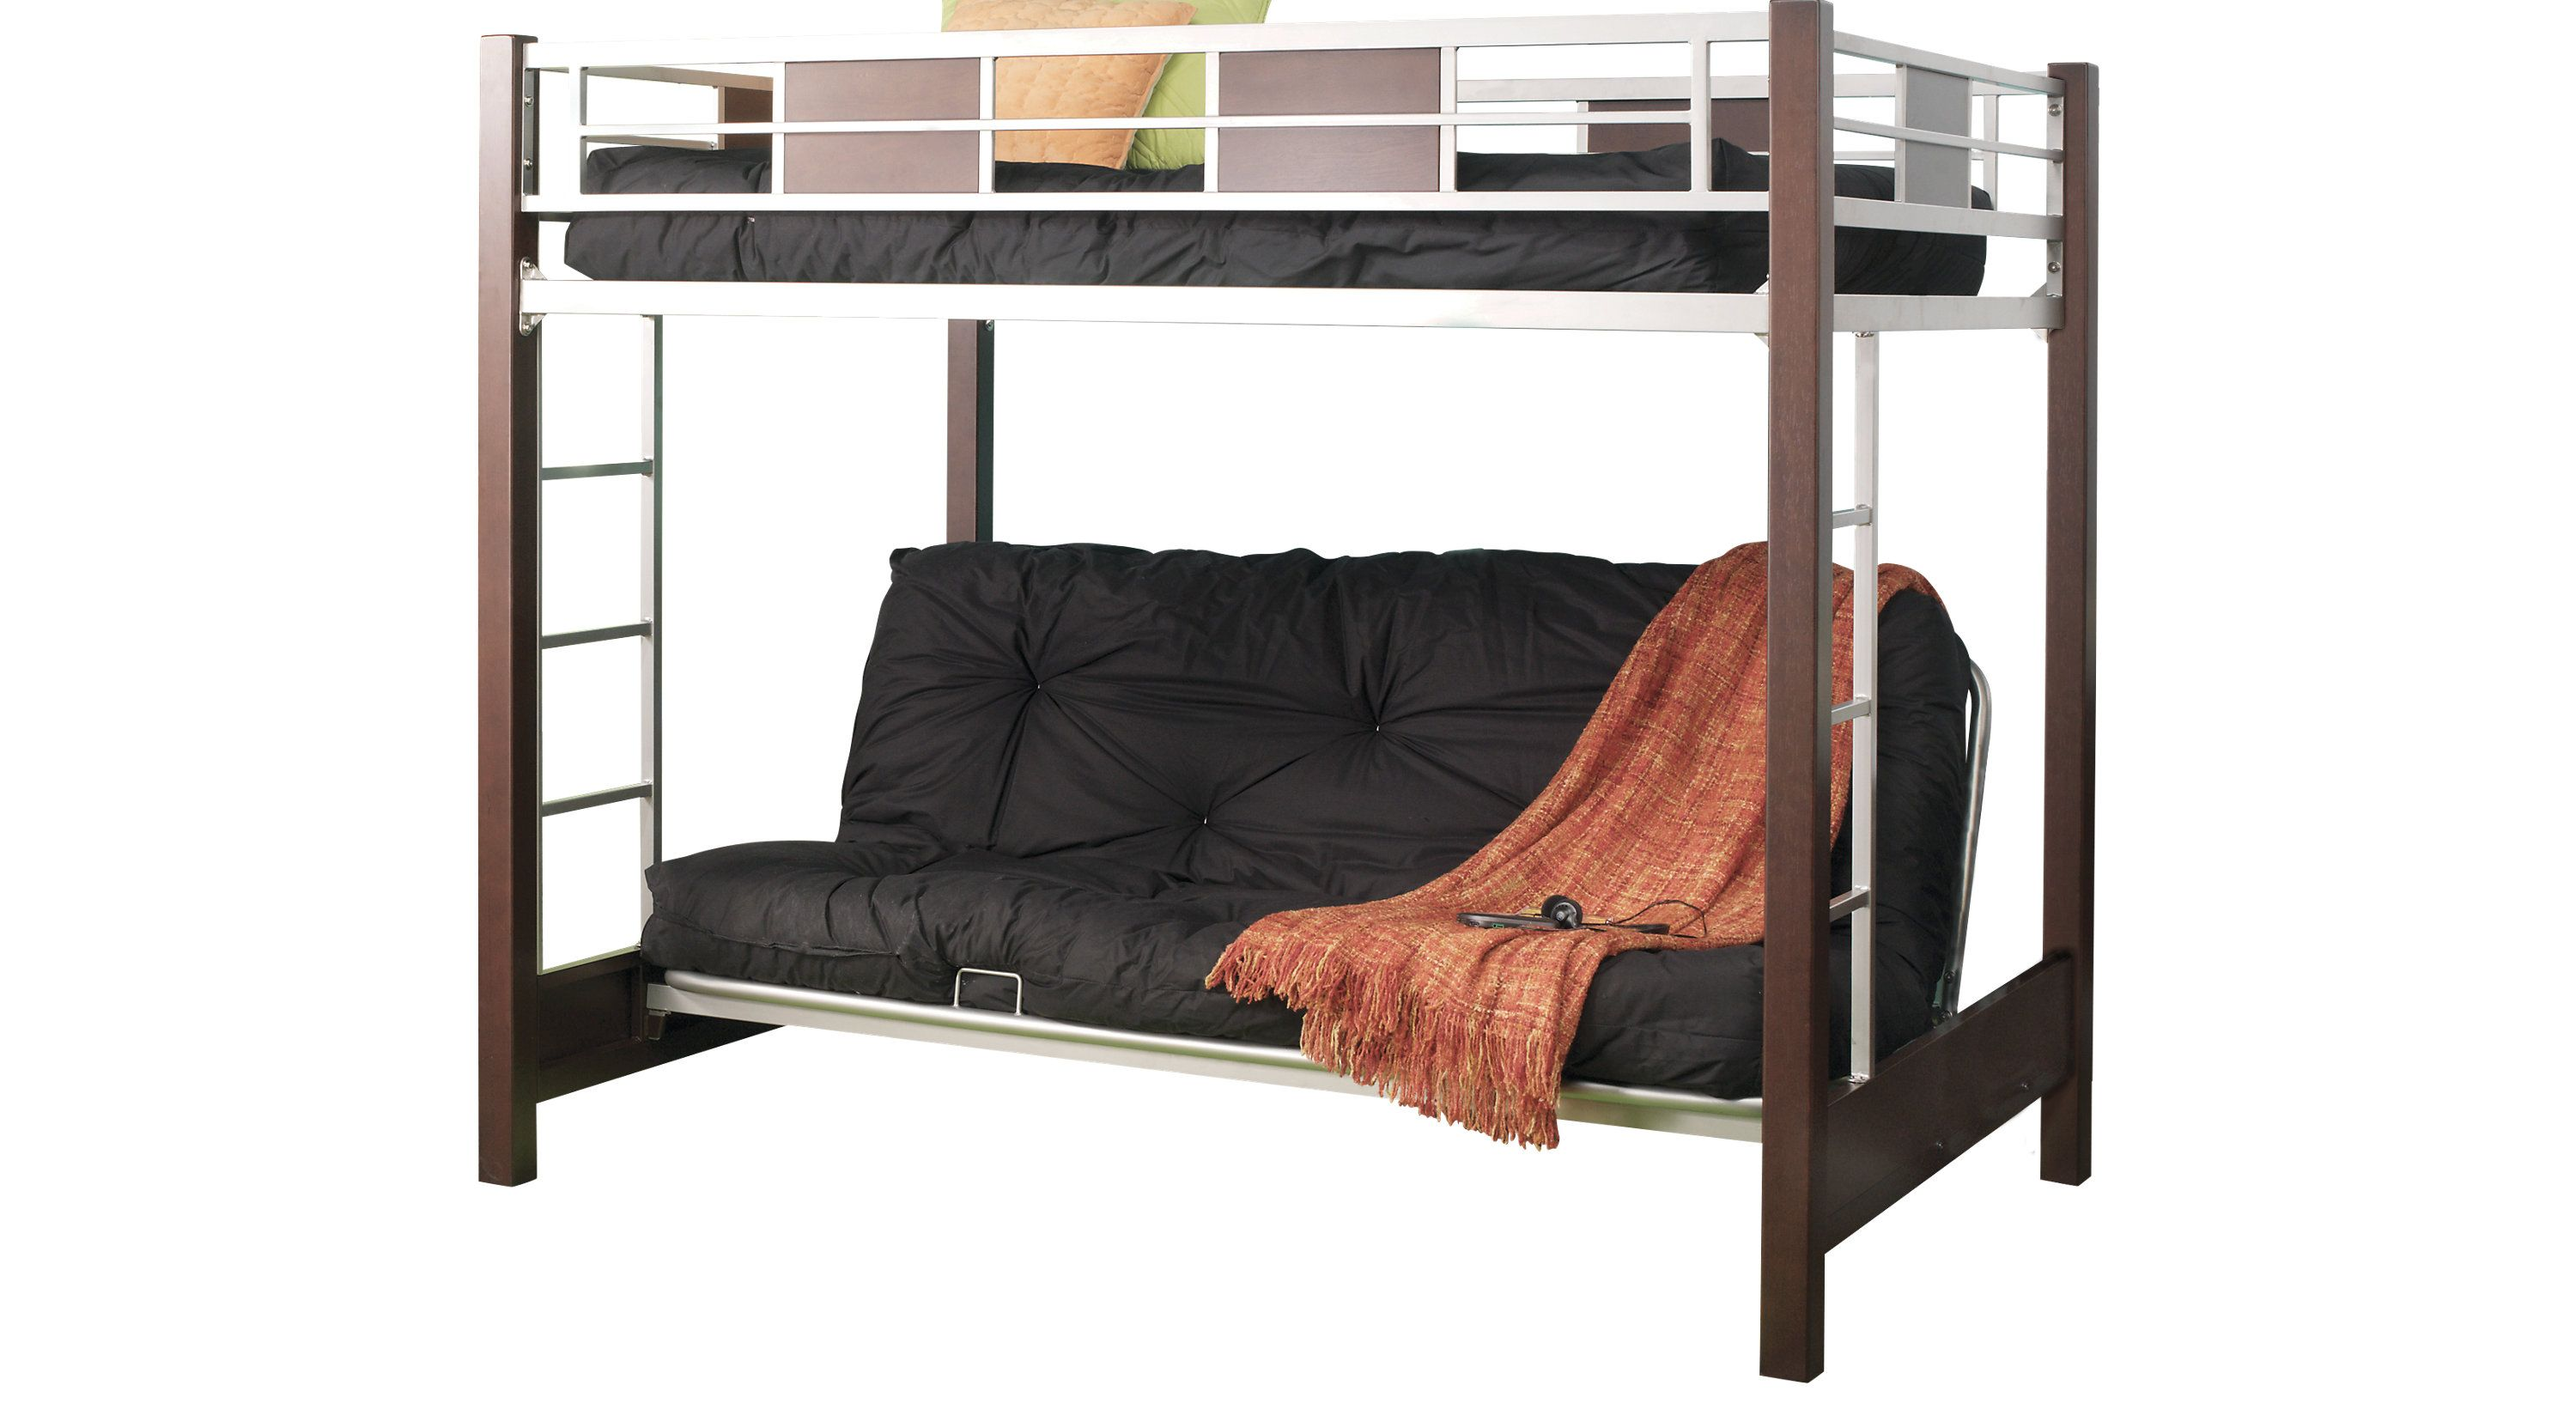 Bunk Beds Rooms To Go Ivy League Cherry 4 Pc Full Futon Loft Bed 36111627 Bunk Bed Rooms Full Futon Loft Bed